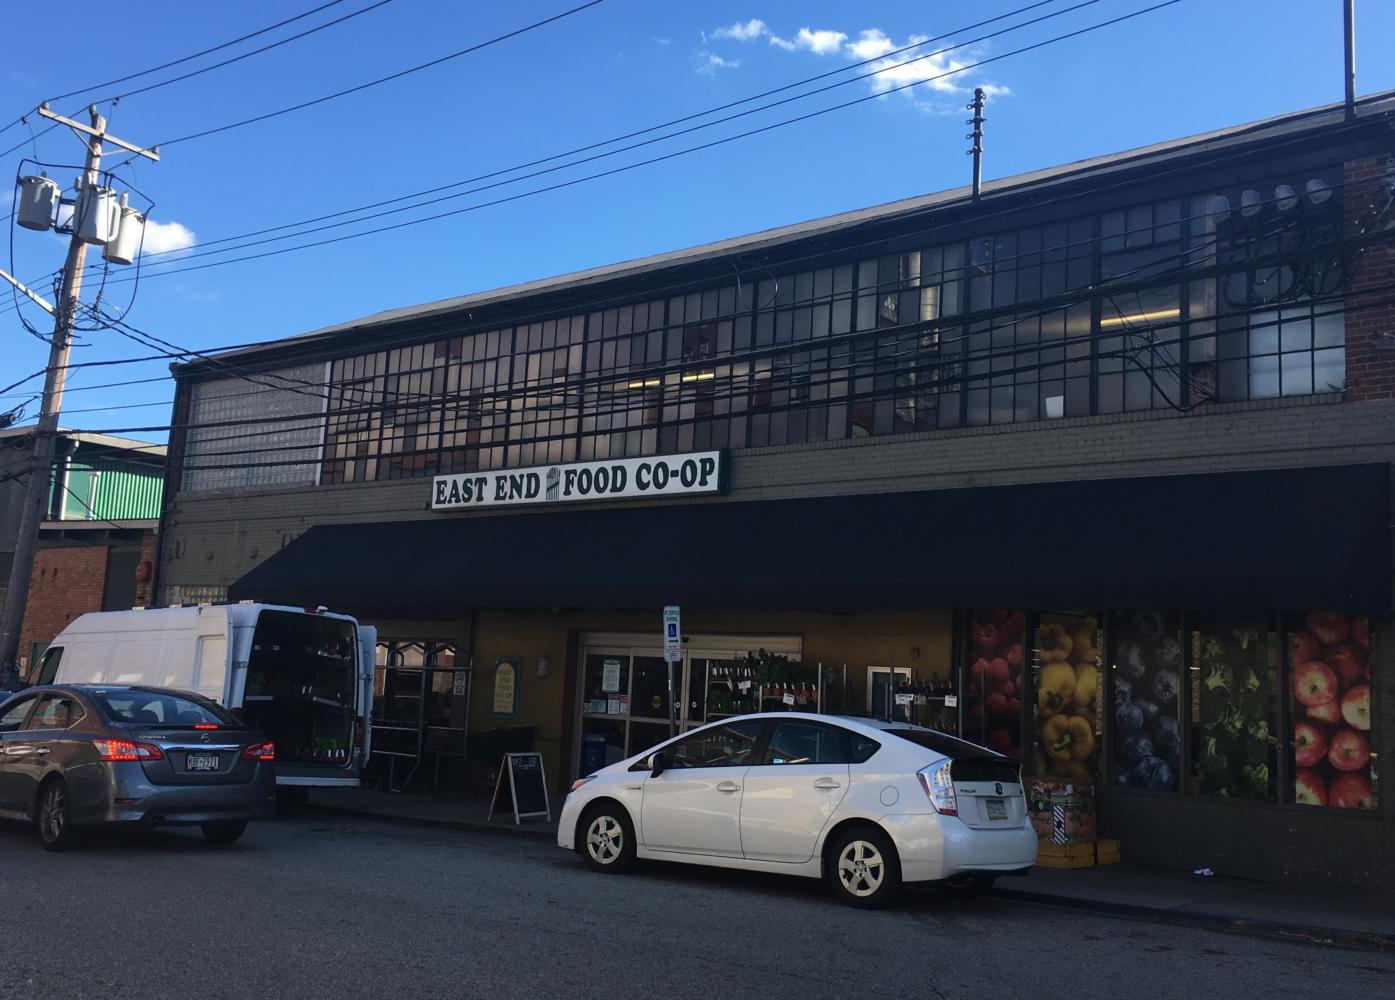 East End Food Co-op is located on Meade St. and has more than 10,000 members who all own a share of the company. (Photo courtesy of Marissa Perino)